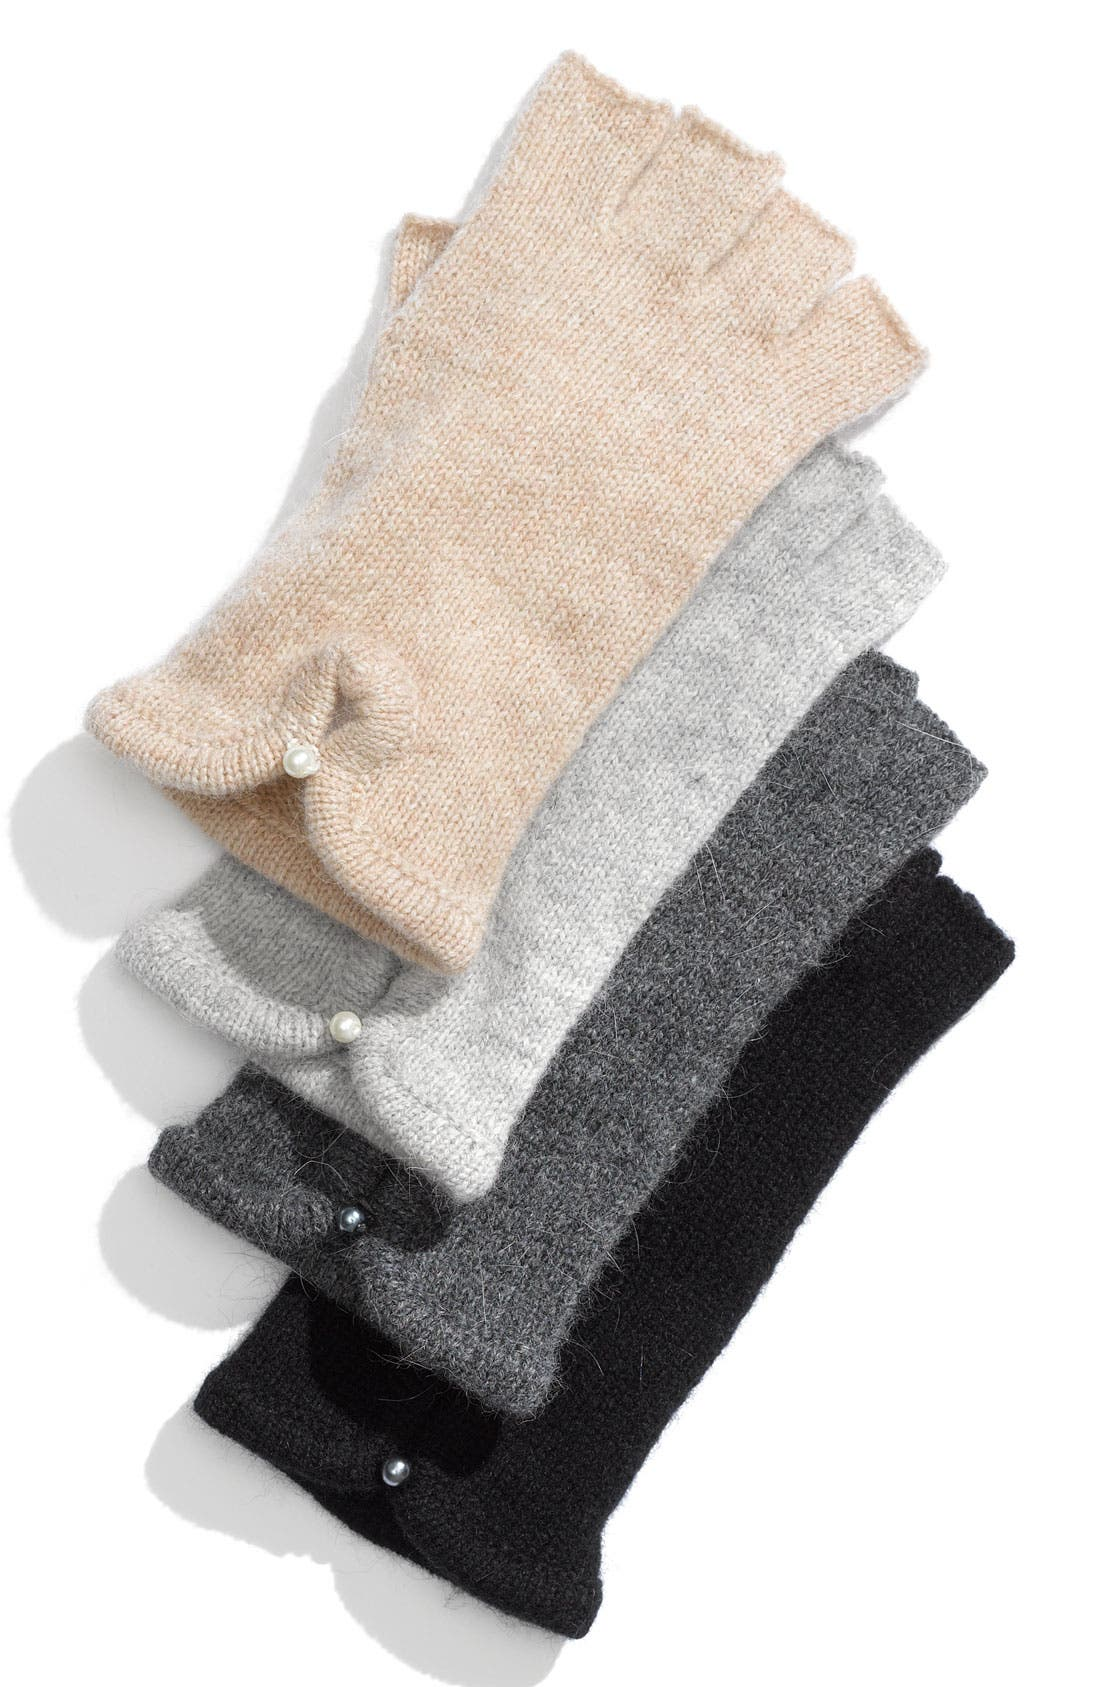 Main Image - Laundry by Shelli Segal Pearl Cuff Fingerless Gloves